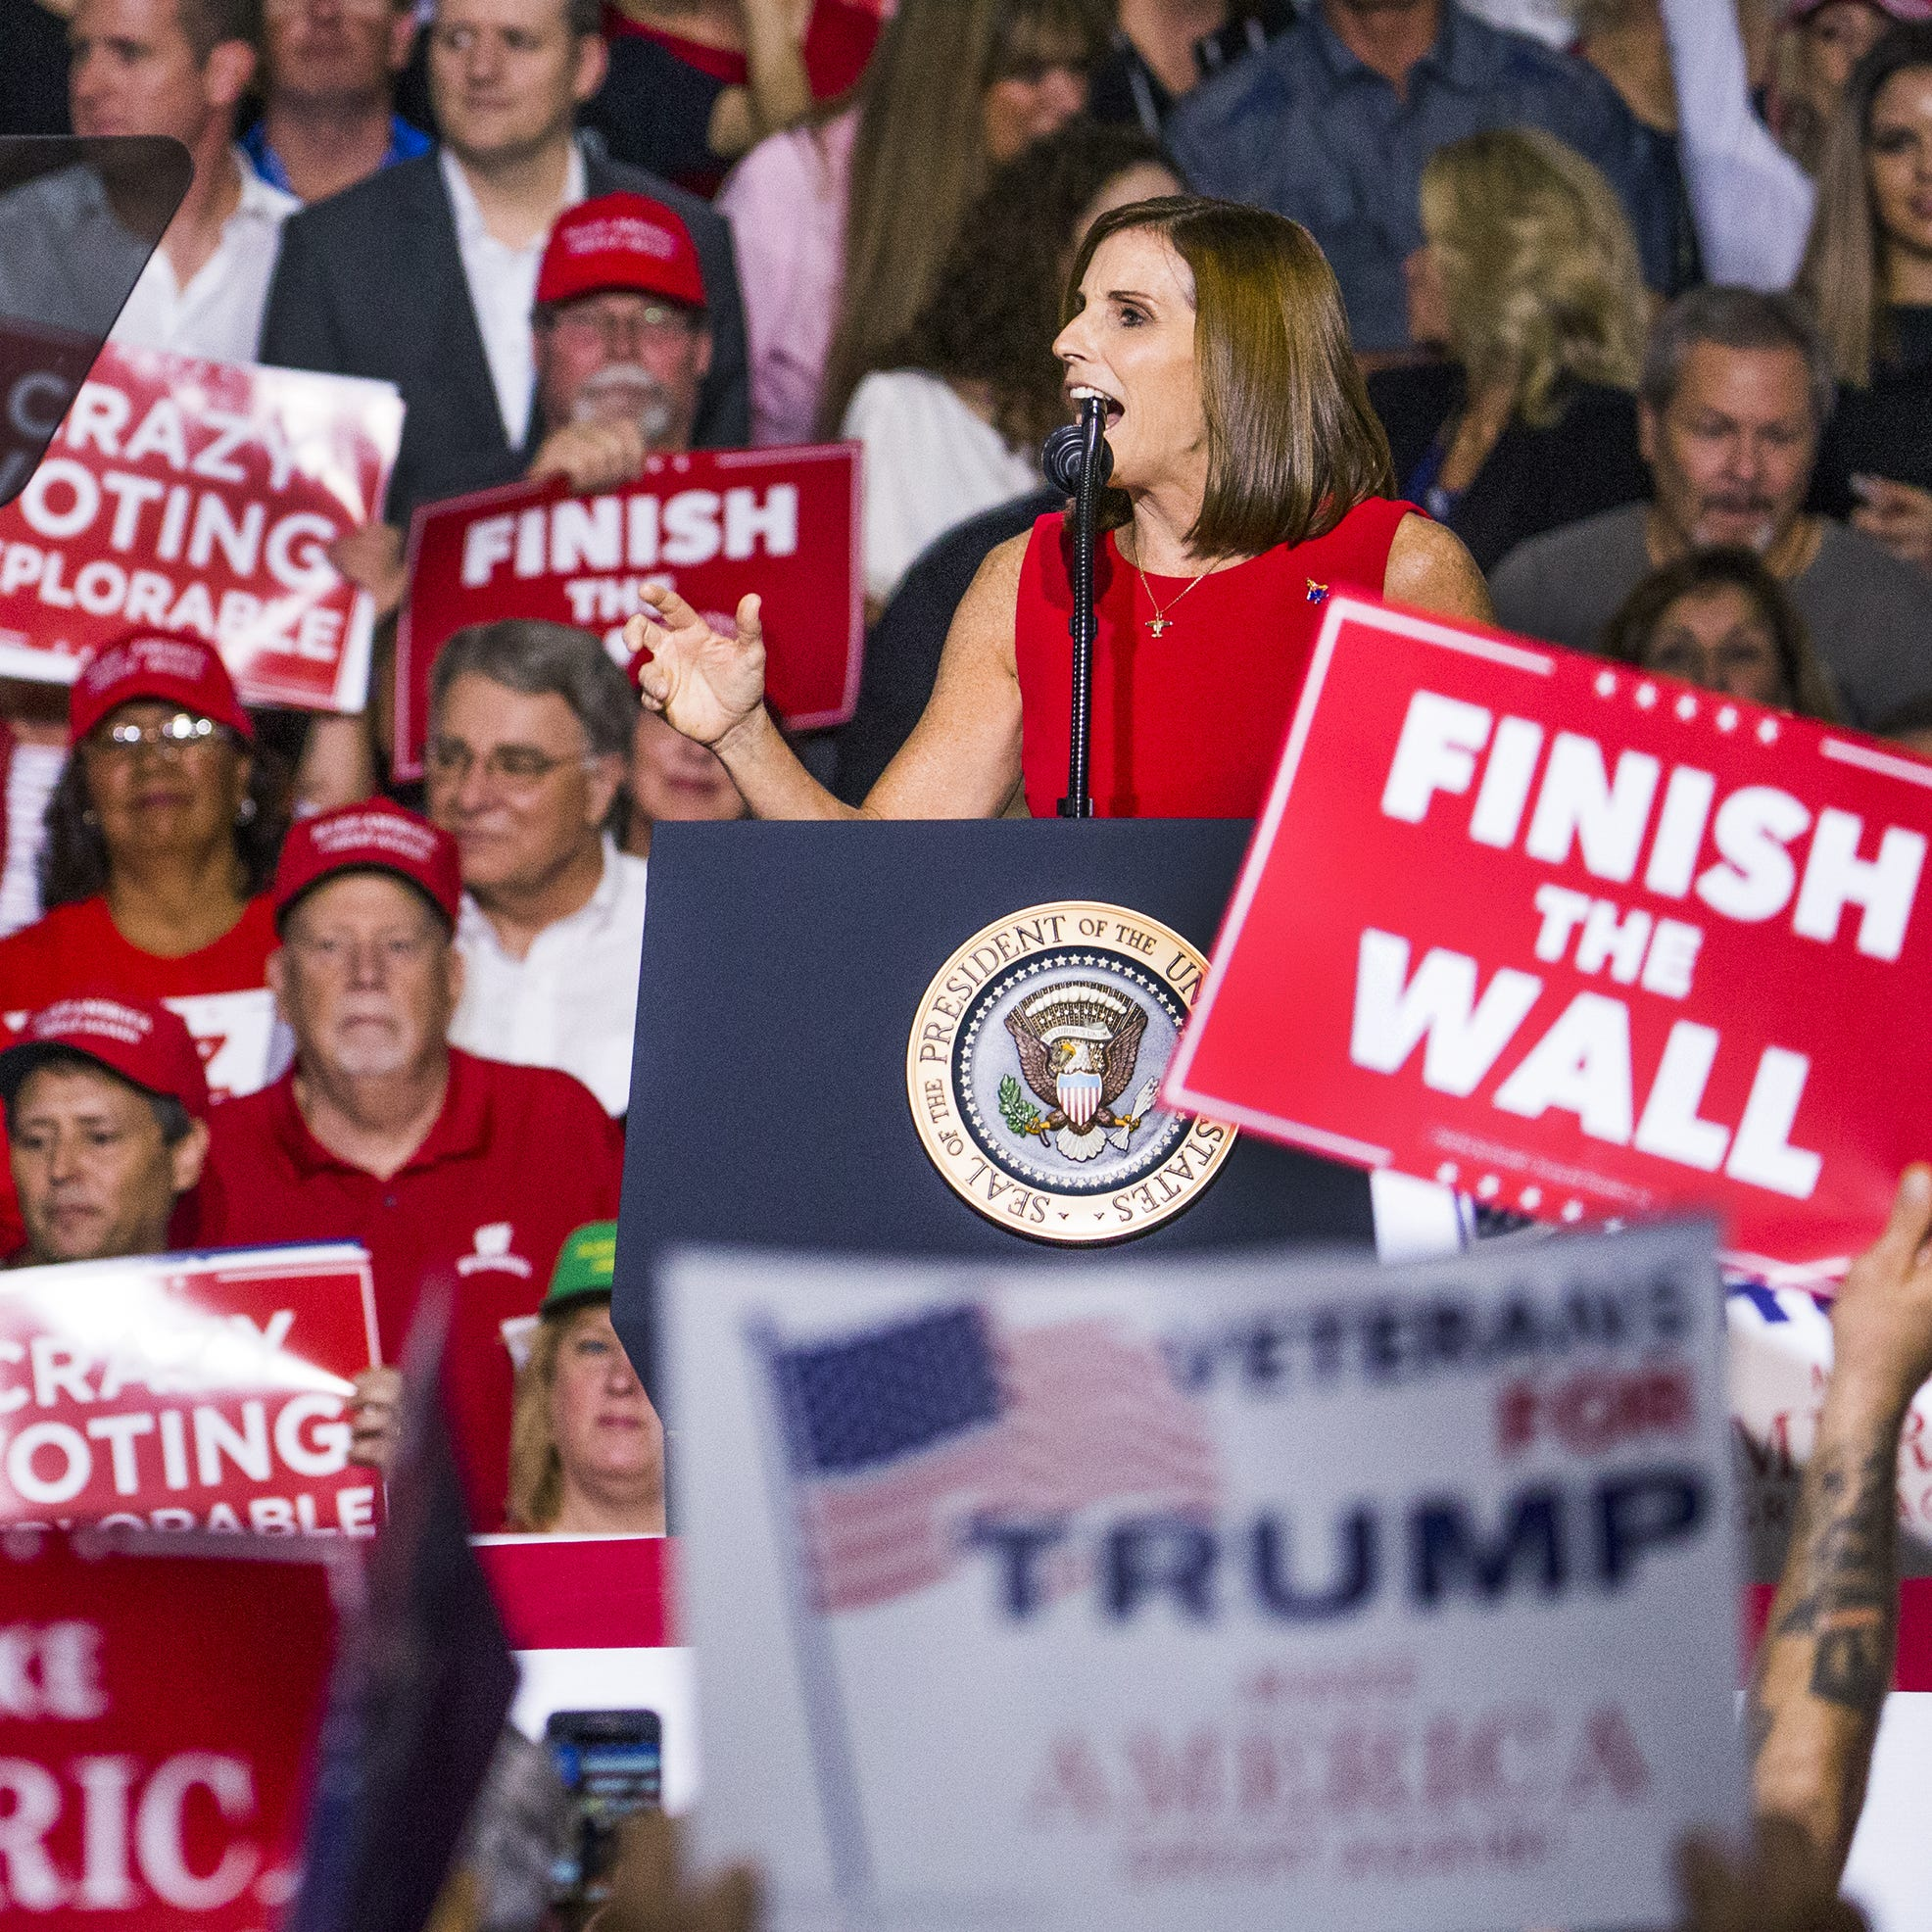 Trump rally: Trump says at Mesa rally 'Democrats produce mobs, Republicans produce jobs'